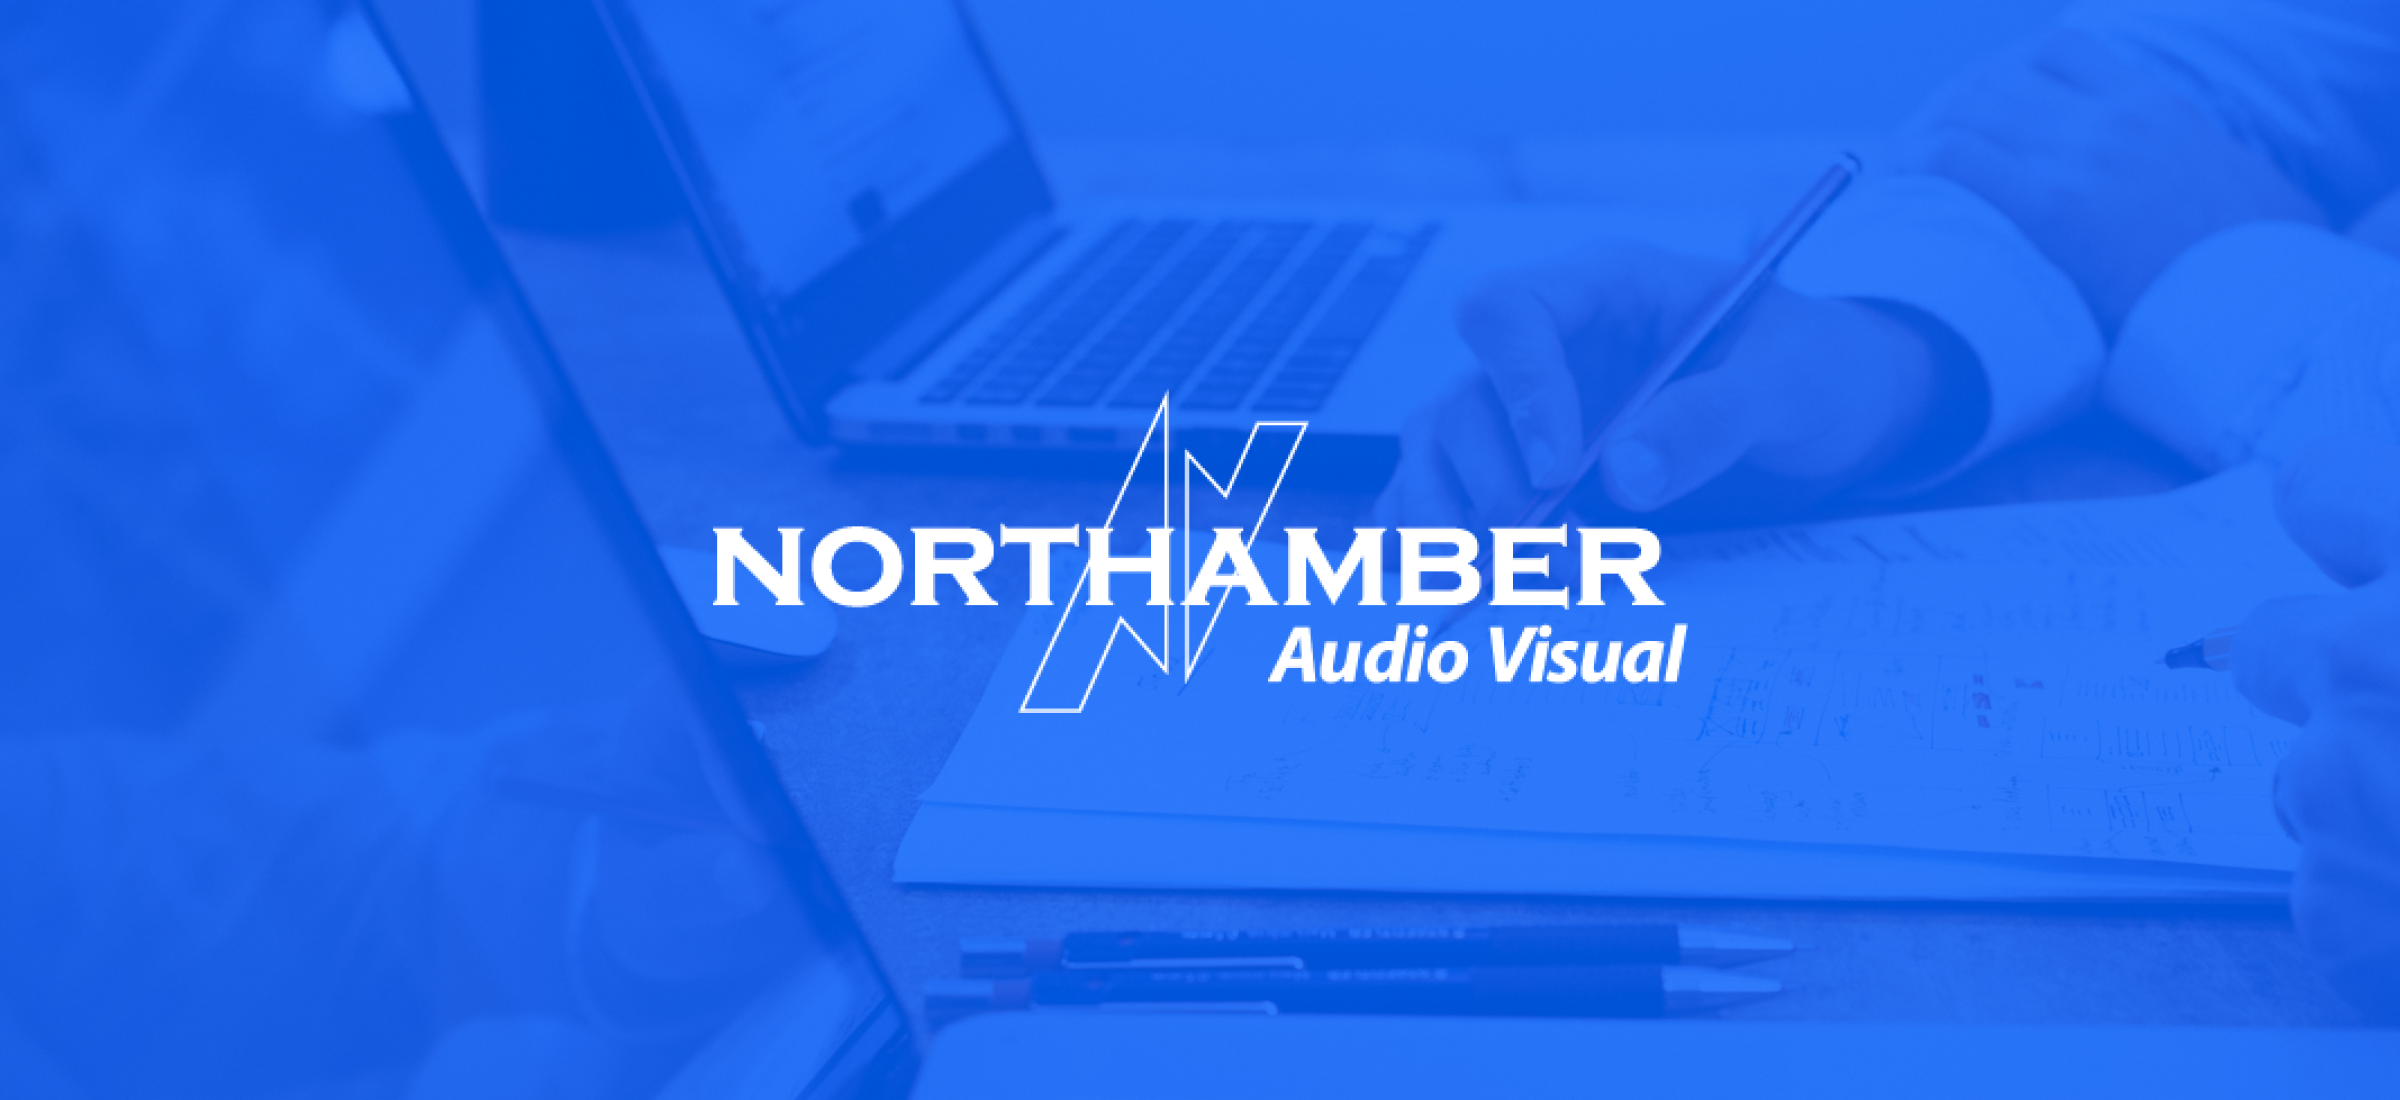 Airtame announces partnership with Northamber AV